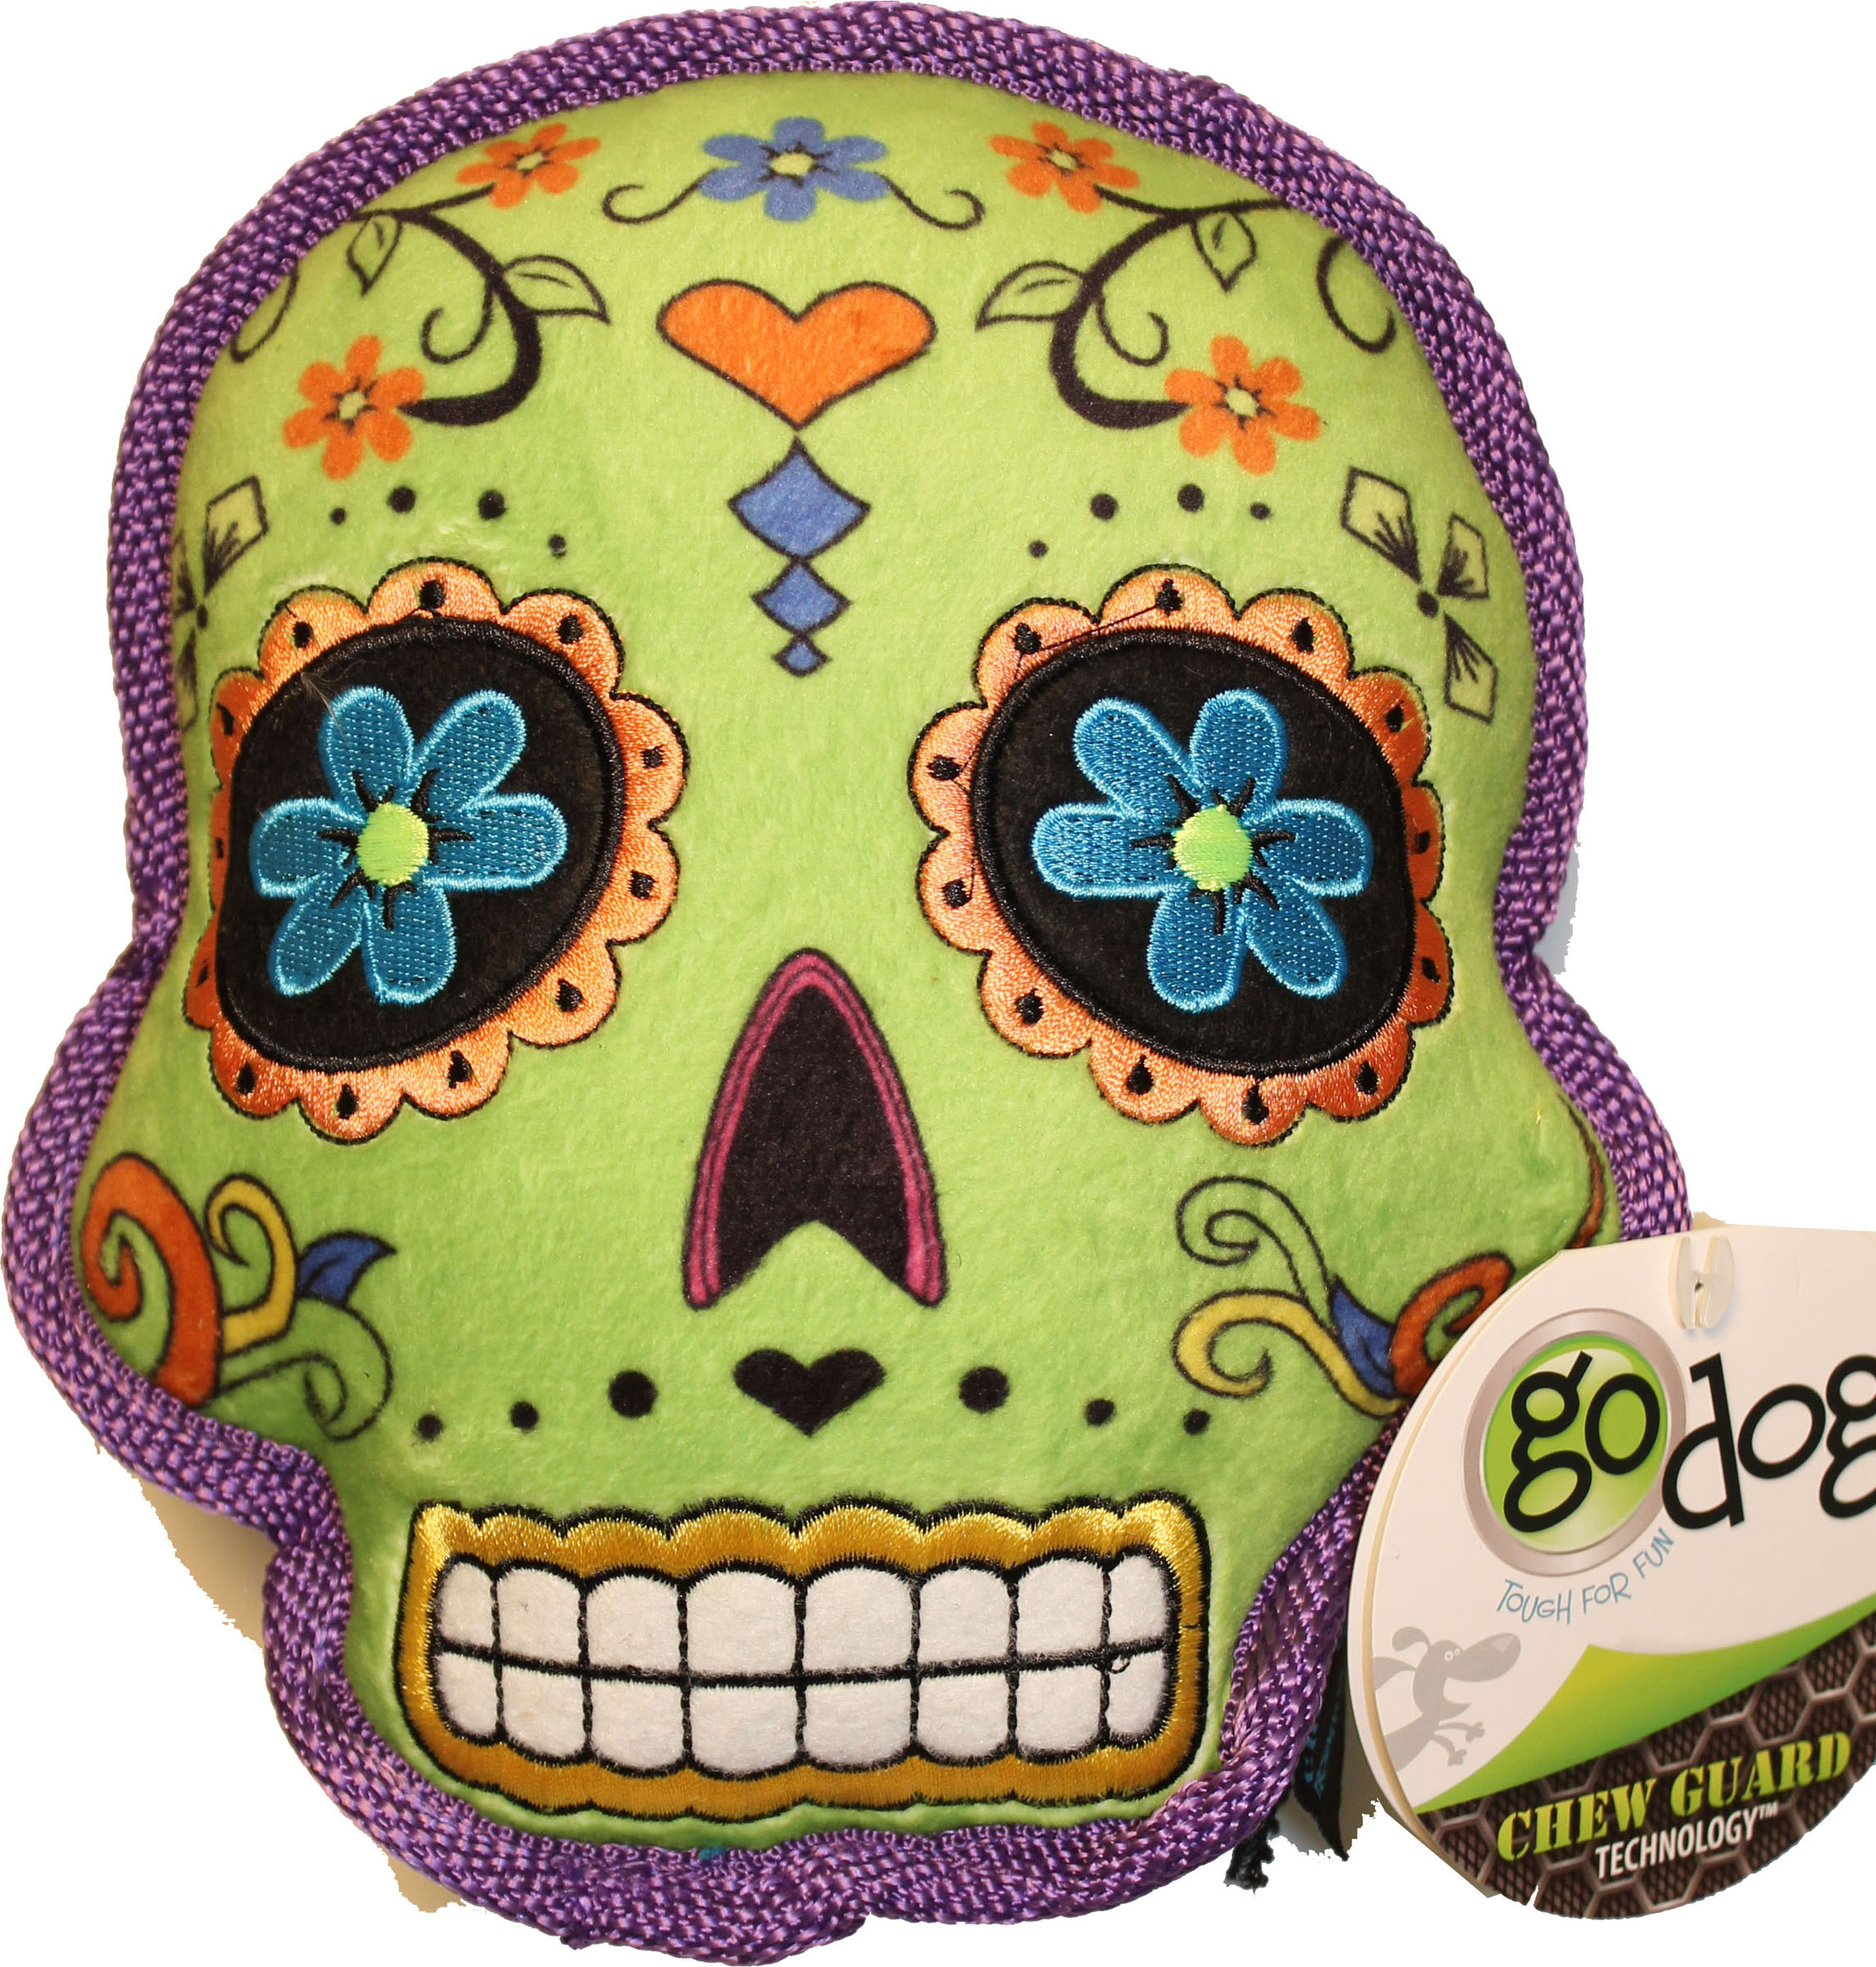 goDog® Sugar Skulls with Chew Guard Technology™ Squeaker Dog Toy, Large, Green